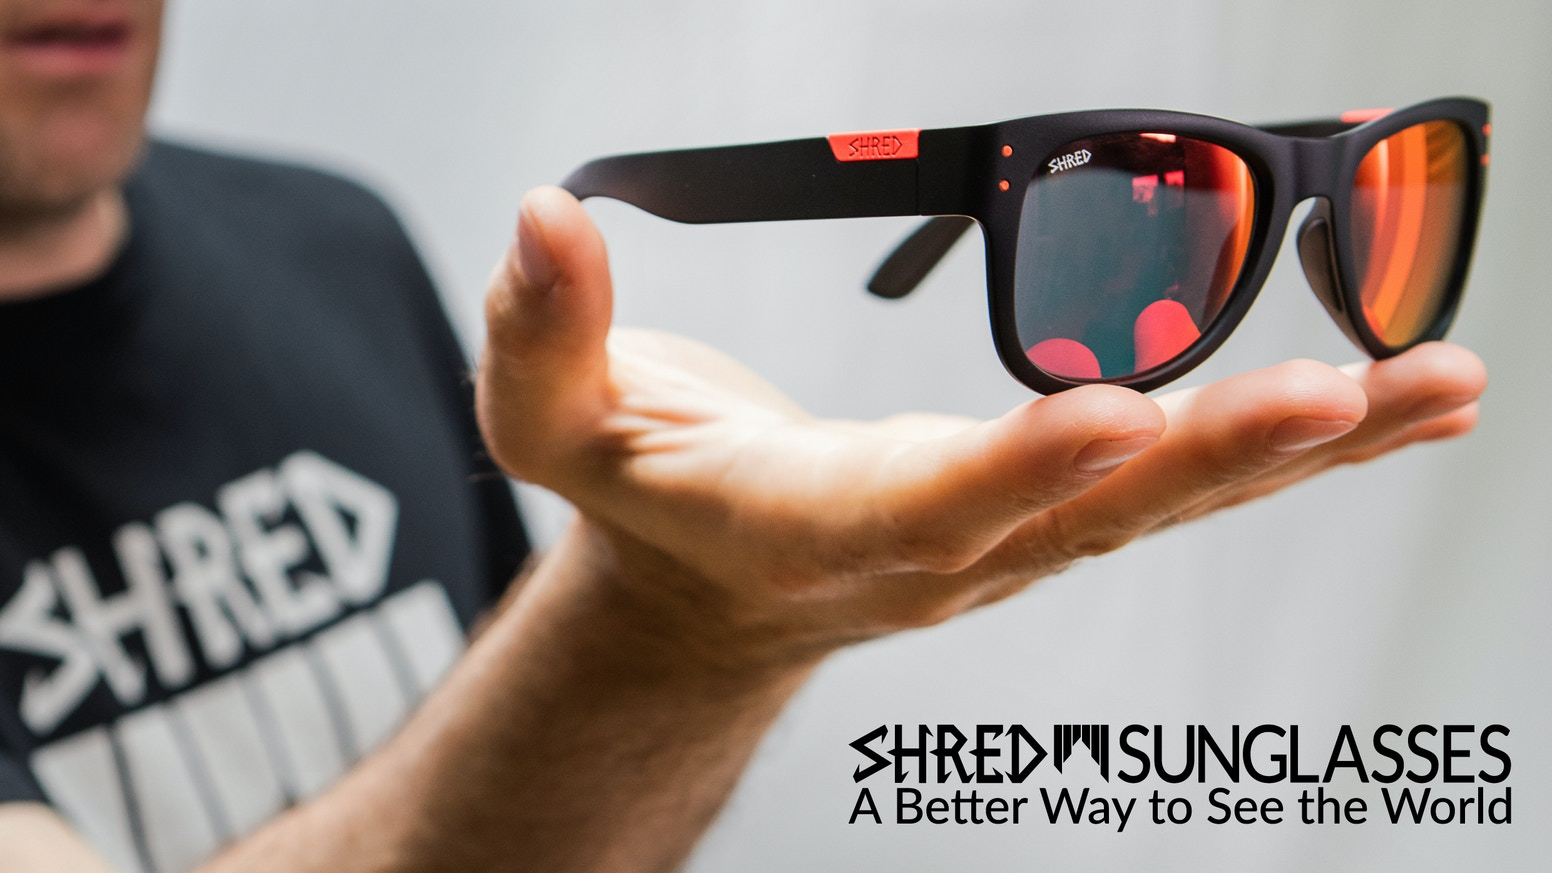 With unrivaled clarity, contrast, and performance, SHRED. sunglasses establish a new standard in optics designed for an active lifestyle